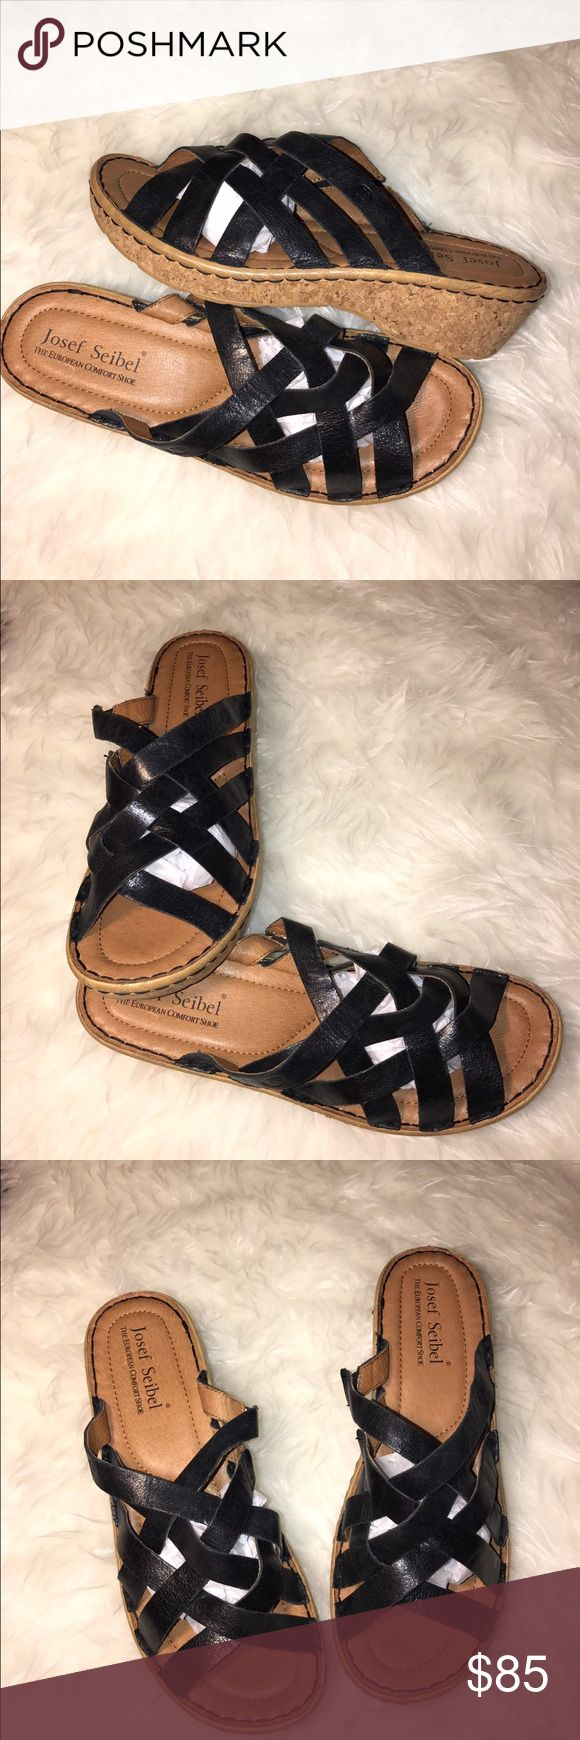 """JOSEF SEIBEL SIZE 11/E42 """"KIRA"""" BLACK SANDALS *JOSEF SEIBEL (The European comfort shoe) DOLOMITE """"KIRA"""" BLACK STRAPPY WEDGE SANDAL* 💗NO TRADES💗 -brand new -size is a EUROPEAN 42 which converts to about 10-11  -2"""" heel -weight 8.5 oz -platform height 1"""" -beautifully interwoven burnished leather uppers -cushion leather foot bed -lightweight, flexible and durable -soft leather lined straps -Color is black so it is a versatile color -all day comfort where -comes from a pet free/smoke free home…"""